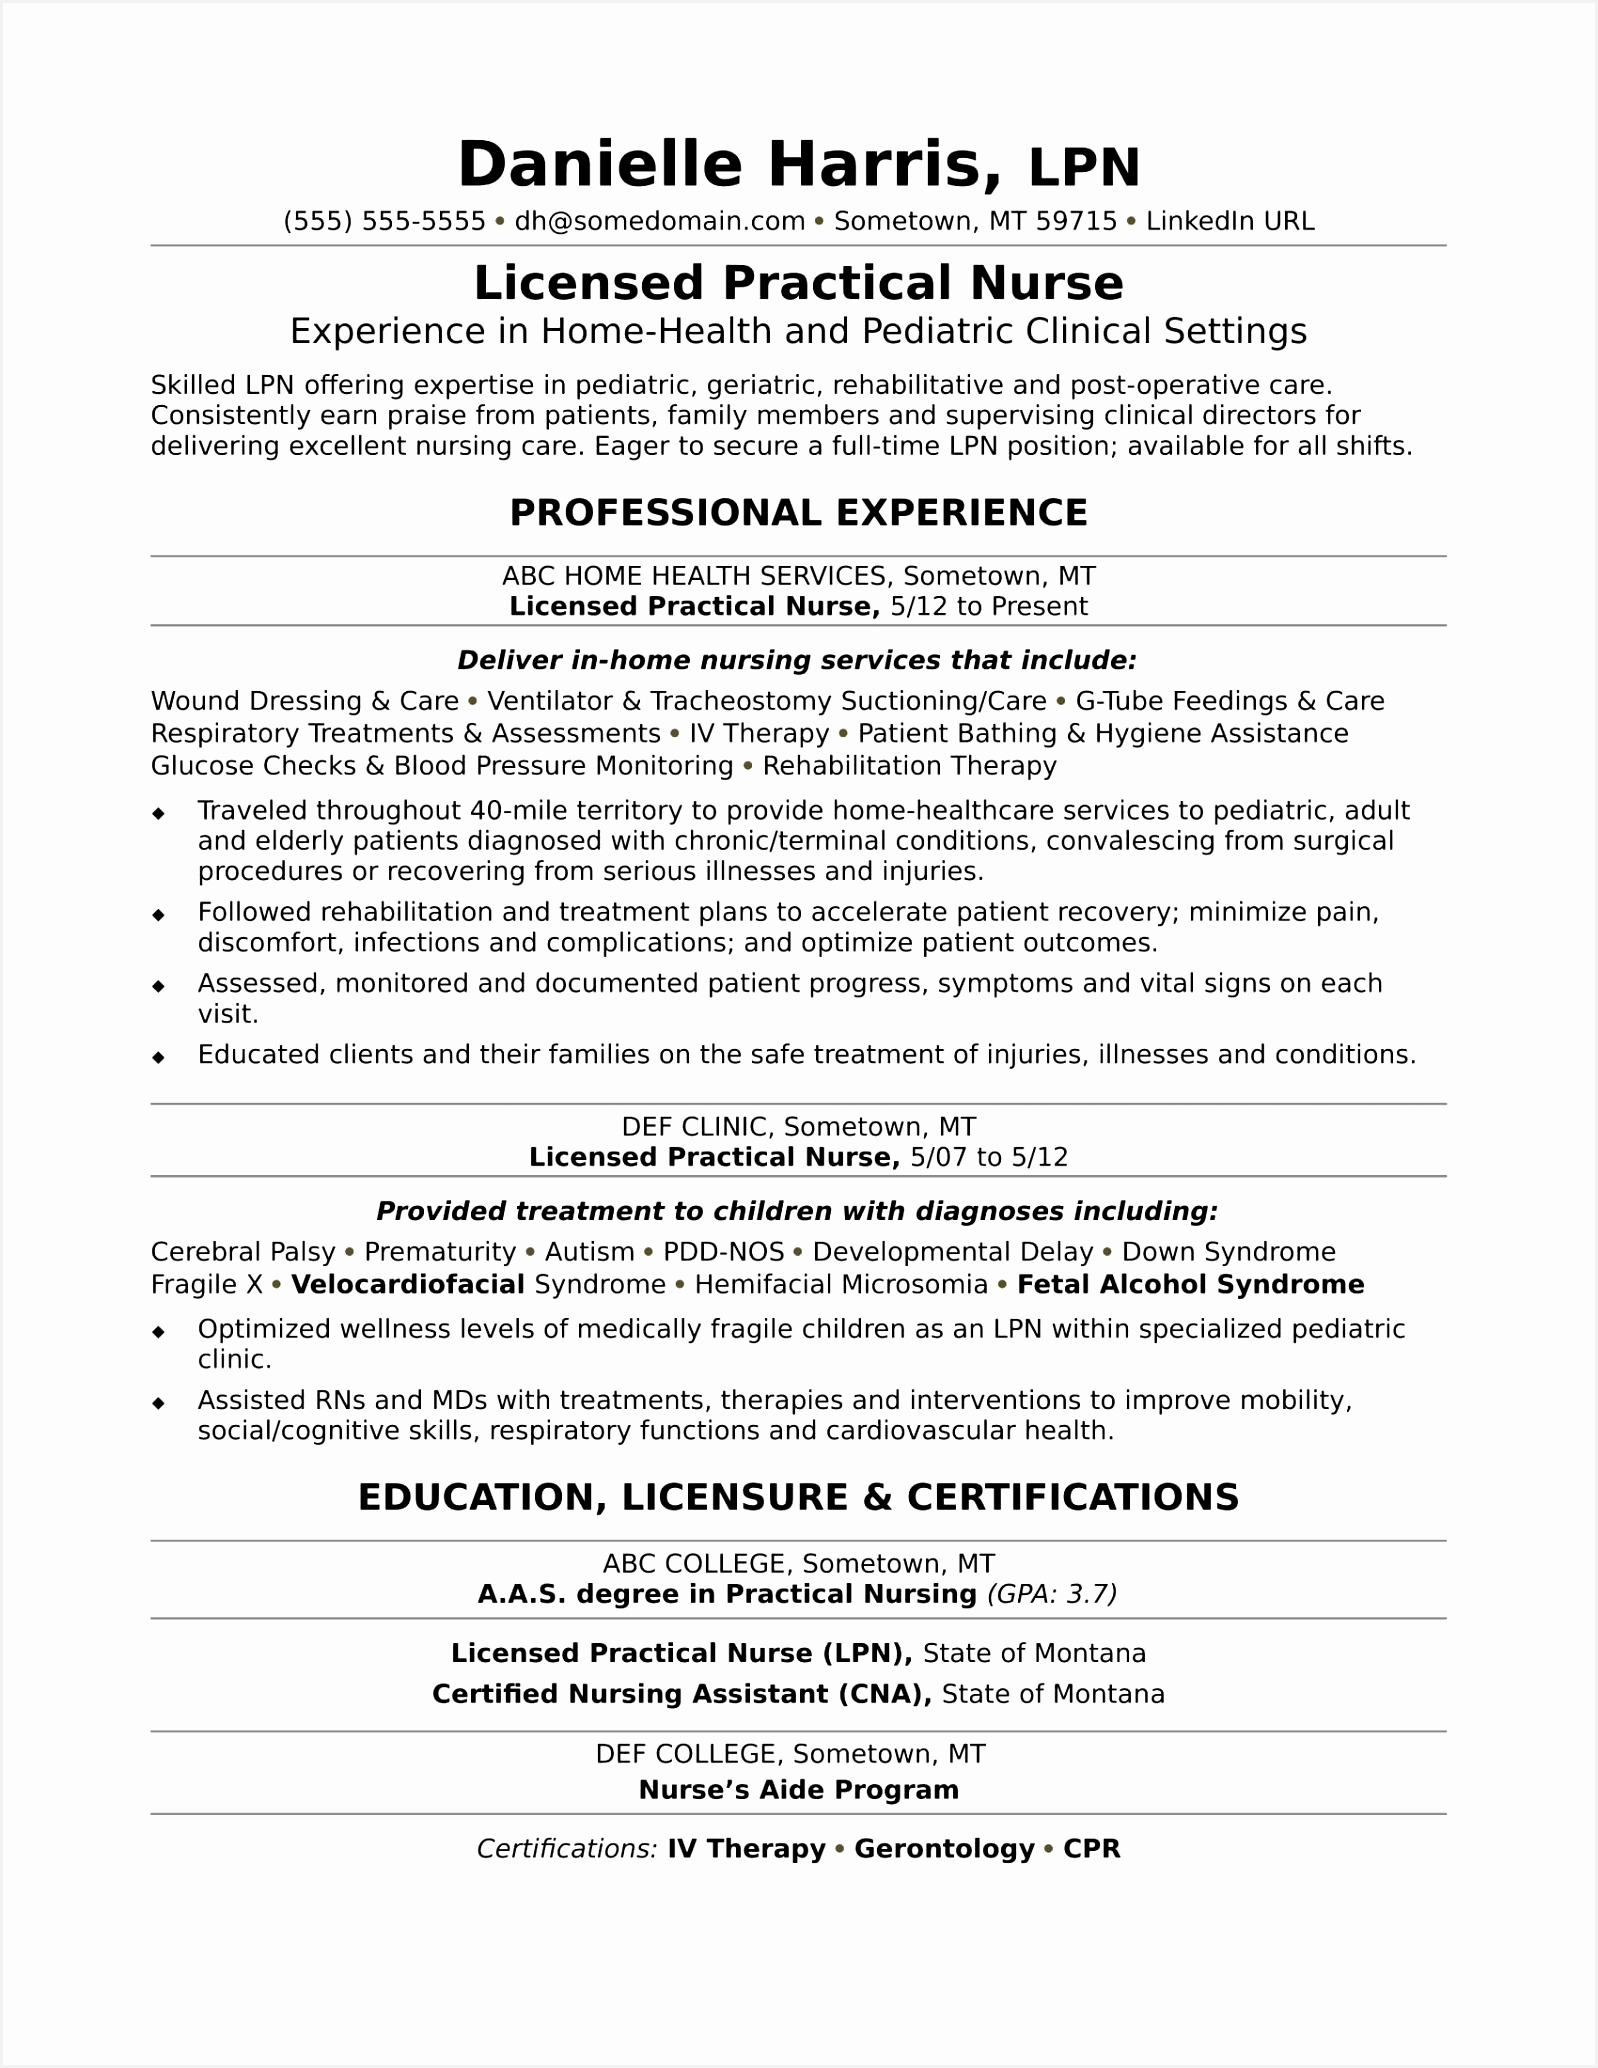 Examples Of Registered Nurse Resume Aaaei Elegant Registered Nurse Resume Sample Luxury Elegant New Nurse Resume Of 9 Examples Of Registered Nurse Resume